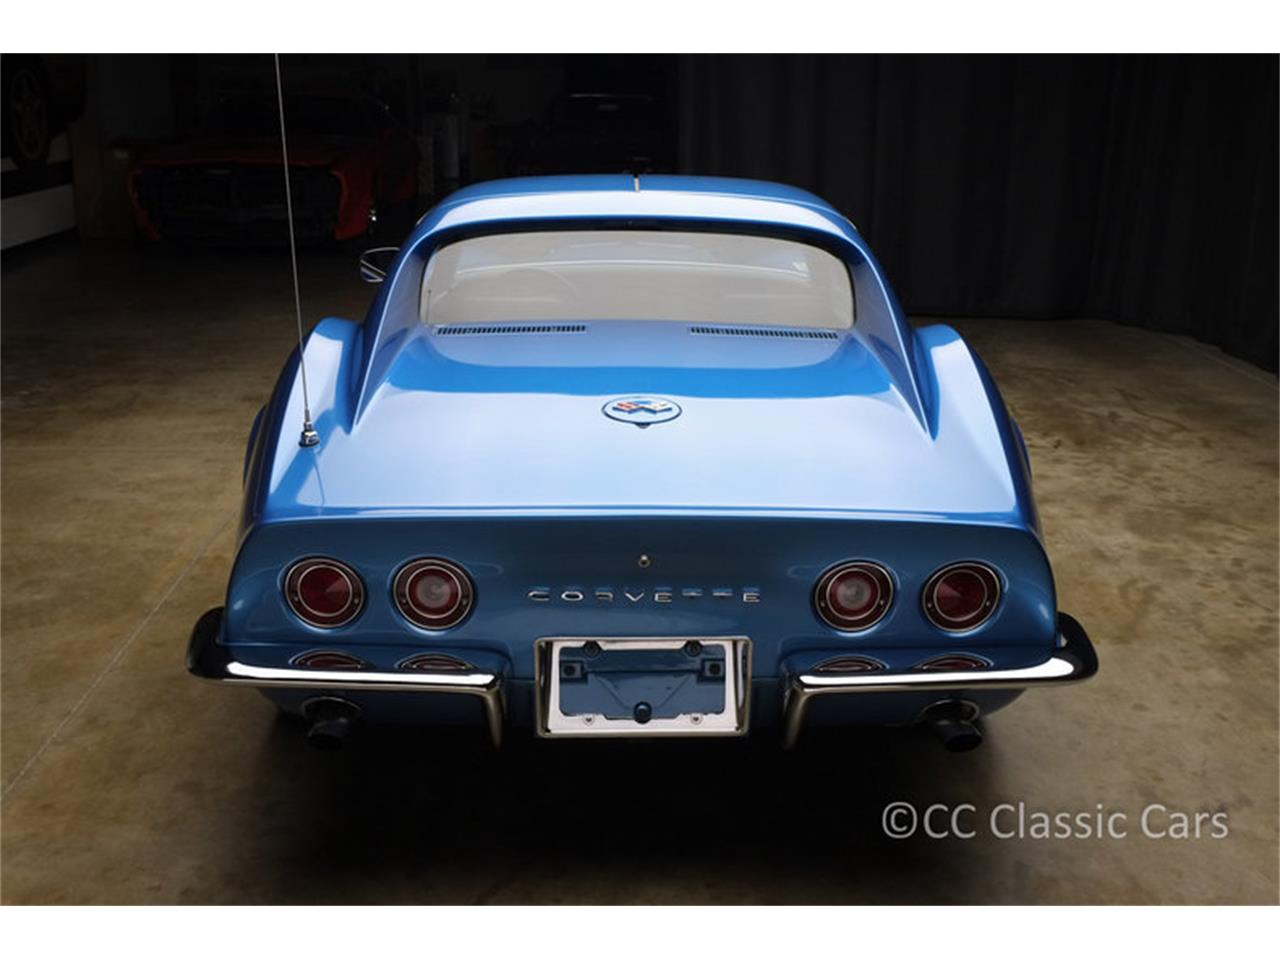 Large Picture of Classic 1969 Corvette Auction Vehicle Offered by CC Classic Cars - HYYM